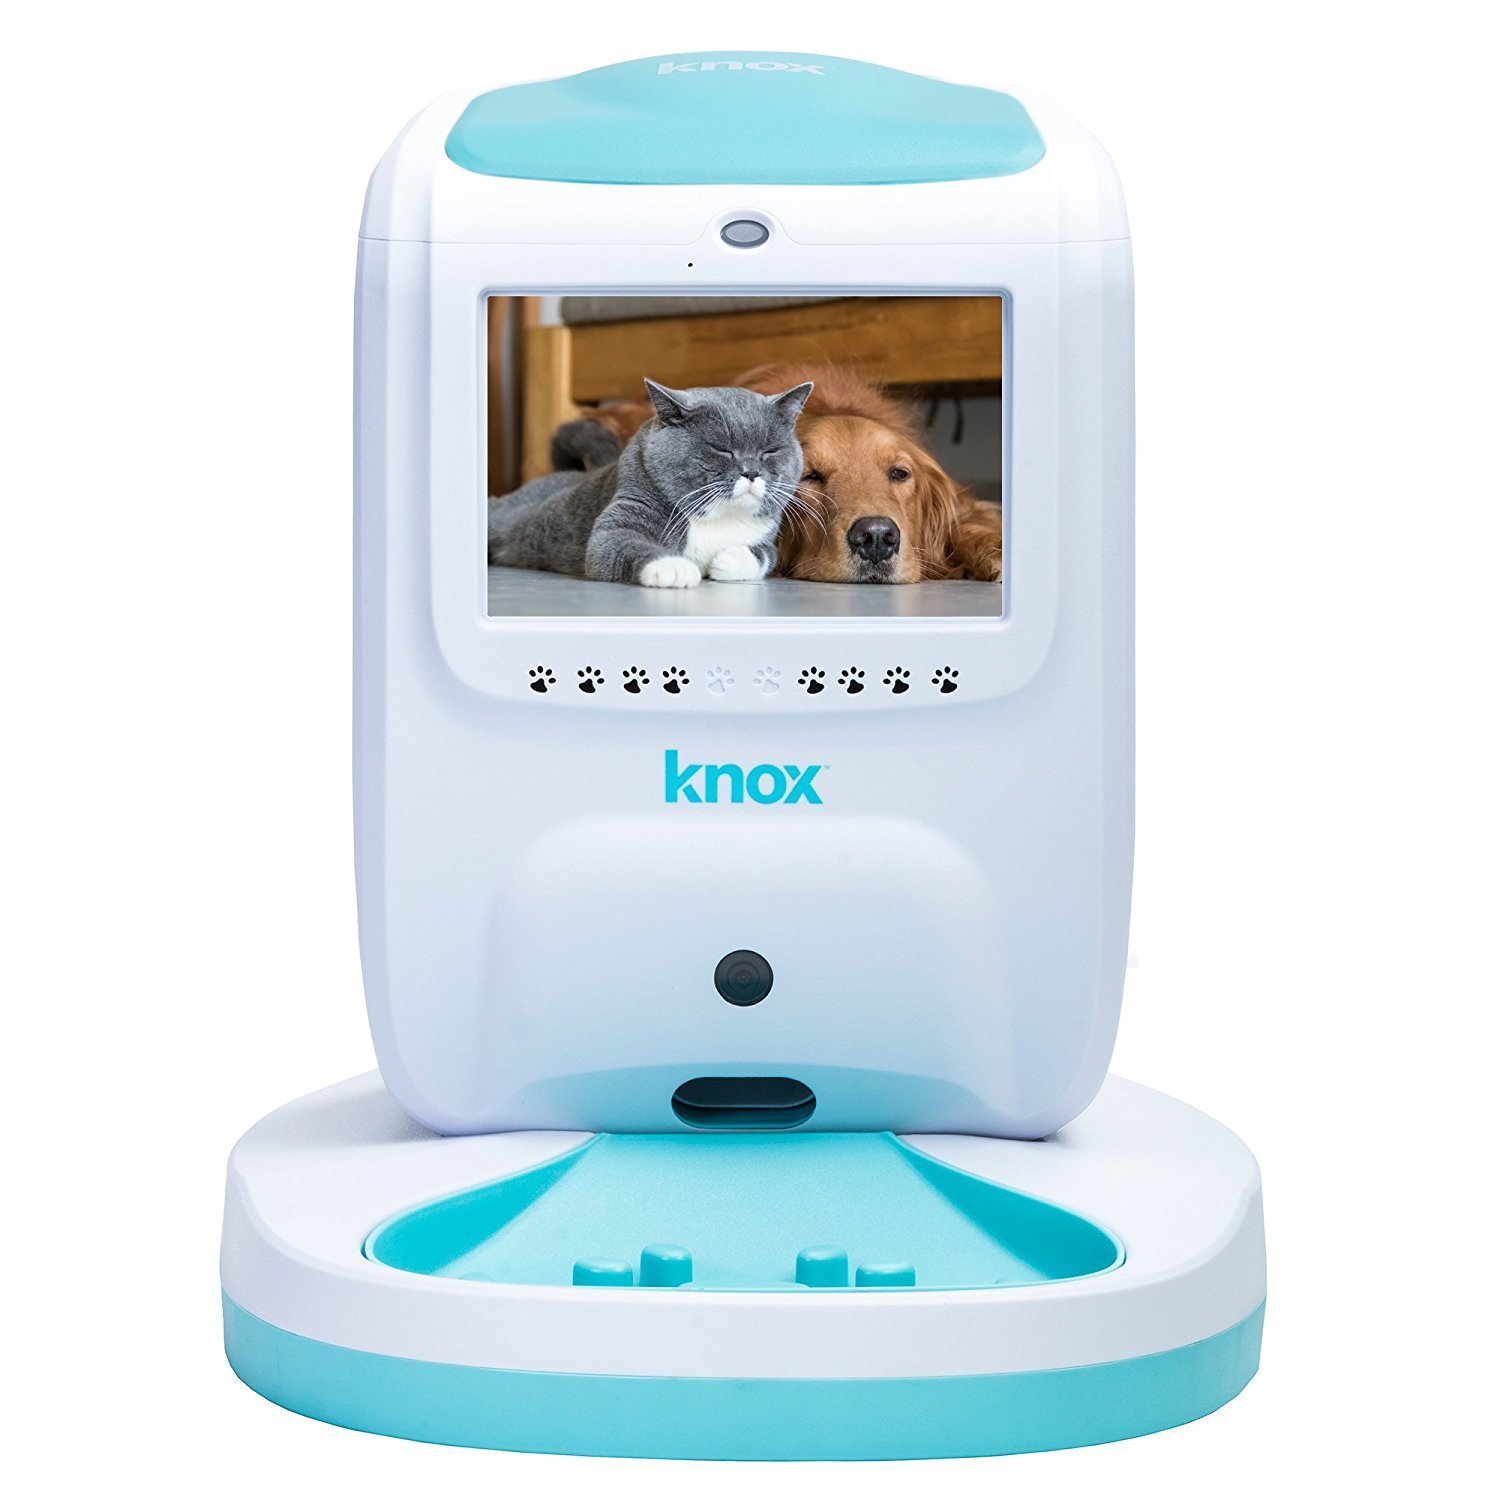 Knox - Smart Wireless Wi-Fi Automatic Dog and Cat Feeder with Two Way Video & Audio